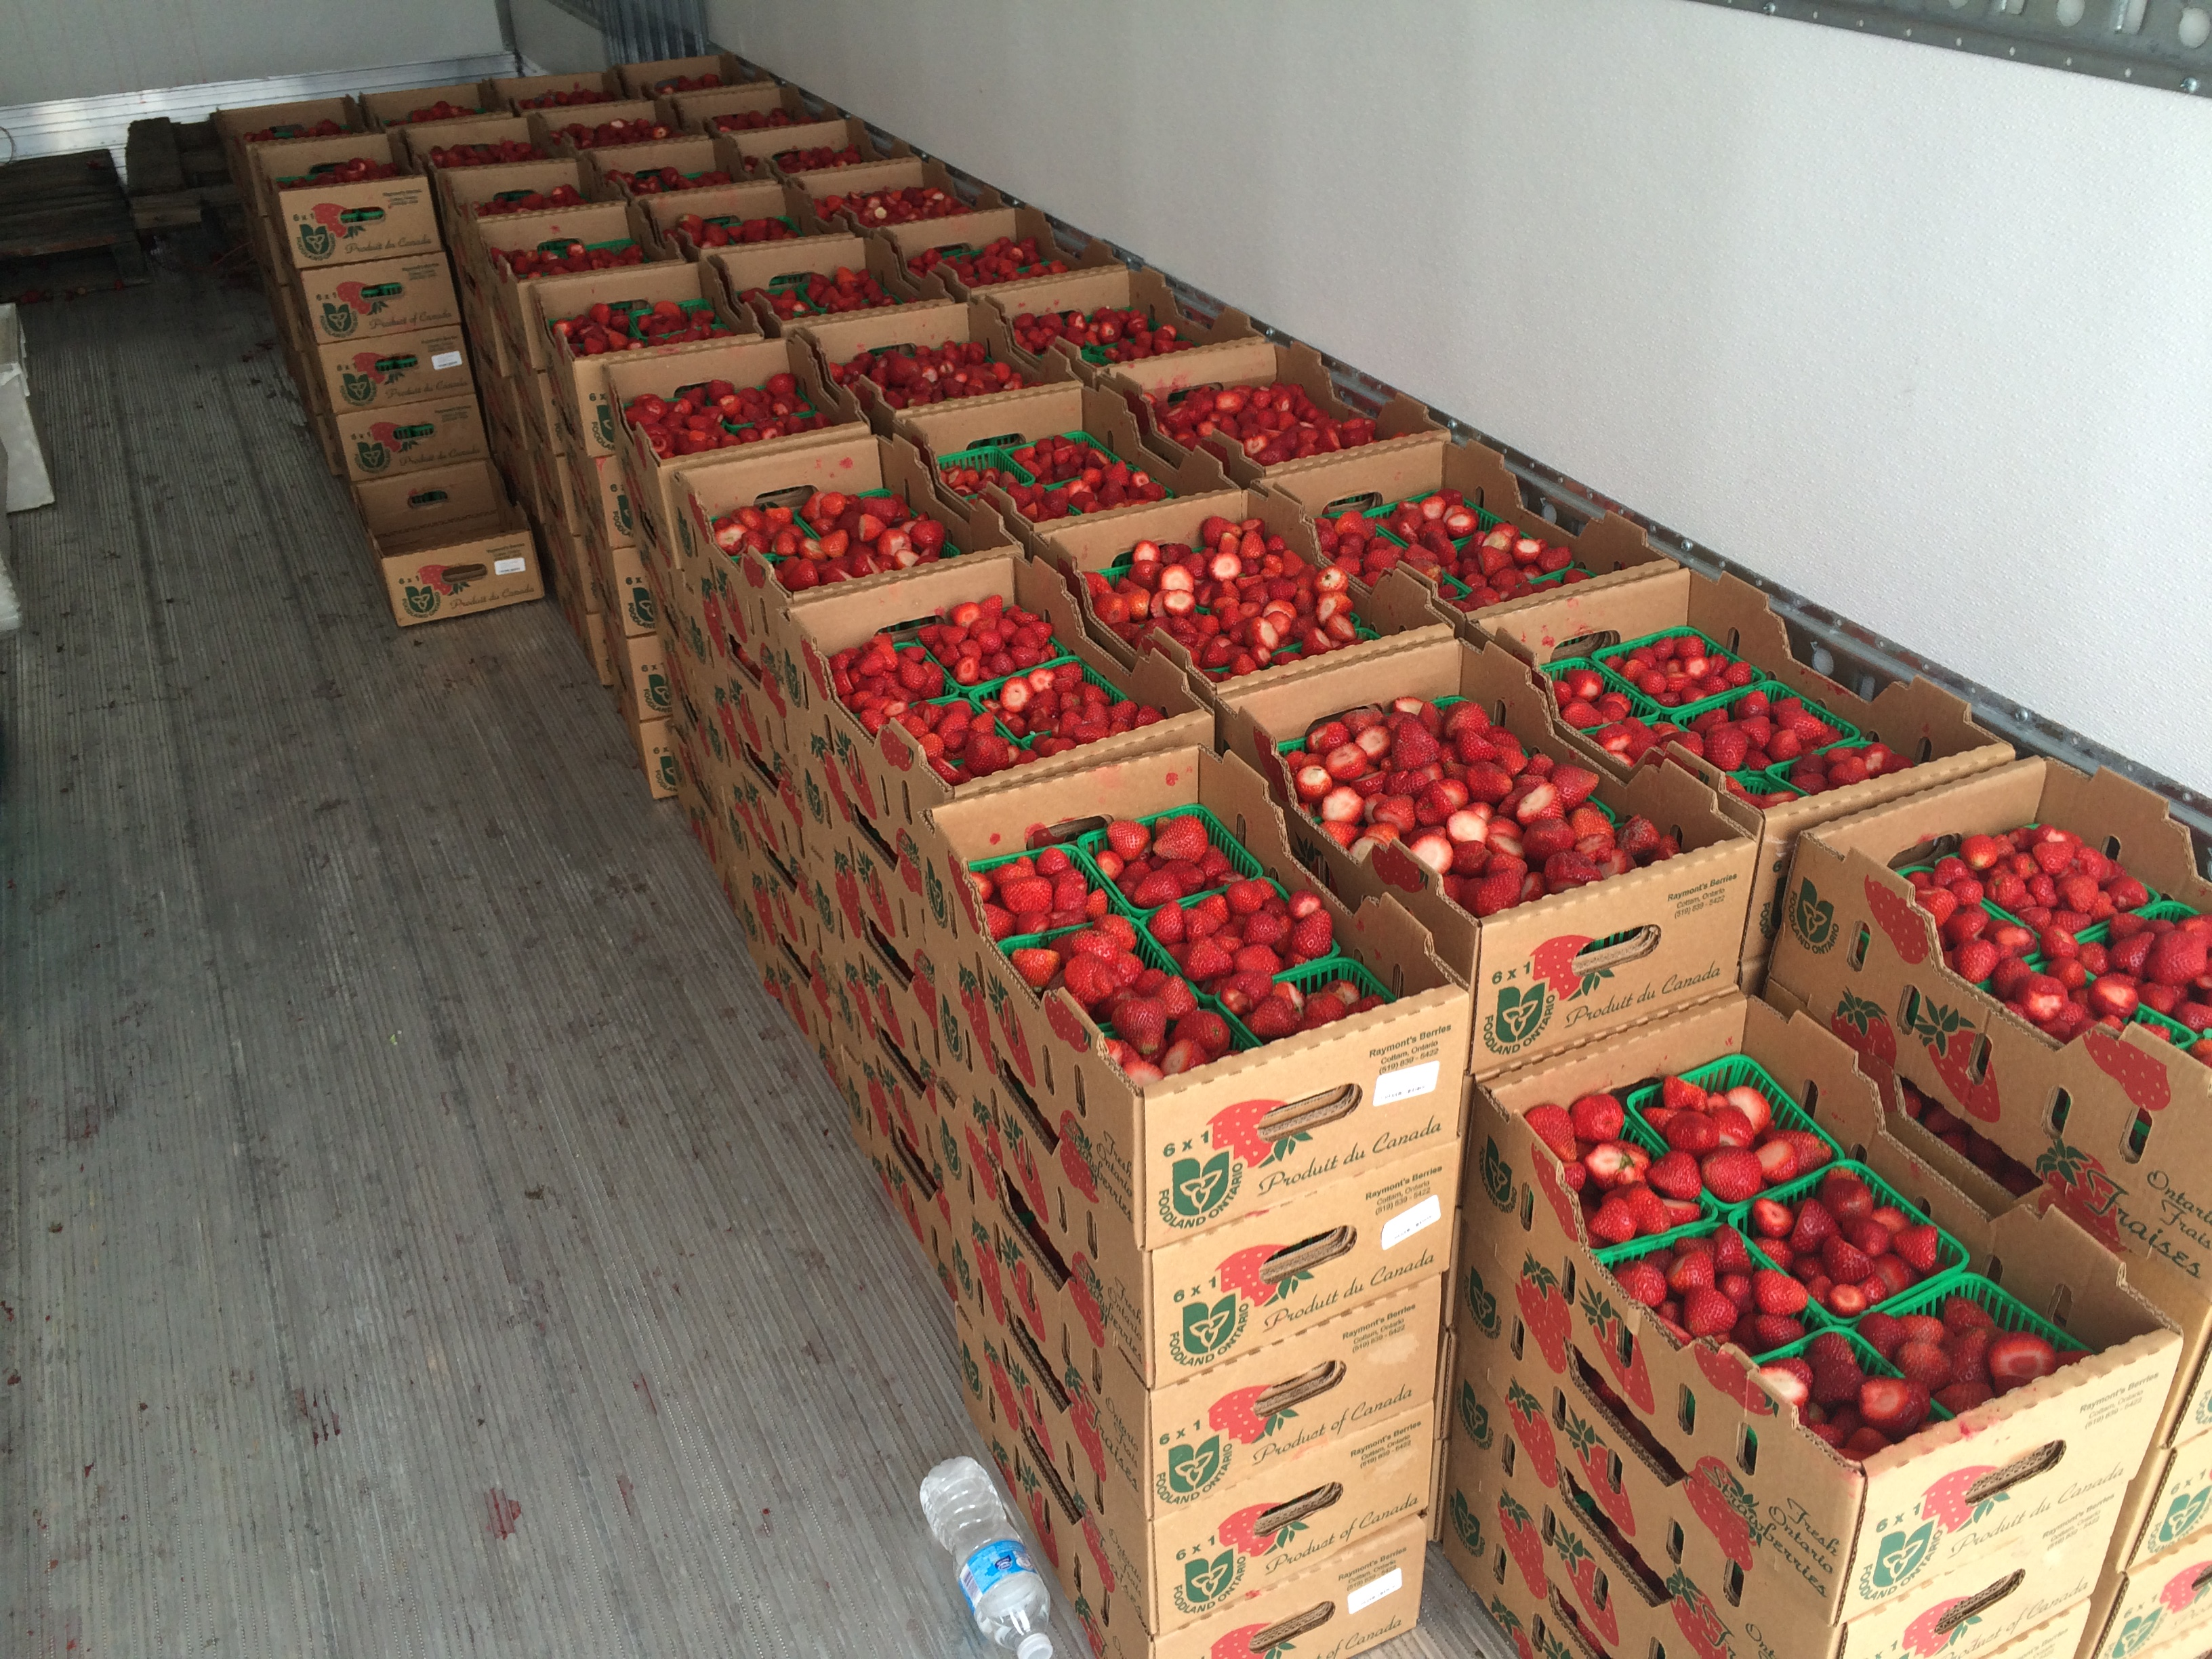 About 200 cases of strawberries are ready to be eaten at the 28th annual LaSalle Strawberry Festival, June 11, 2015. (Photo by Jason Viau)